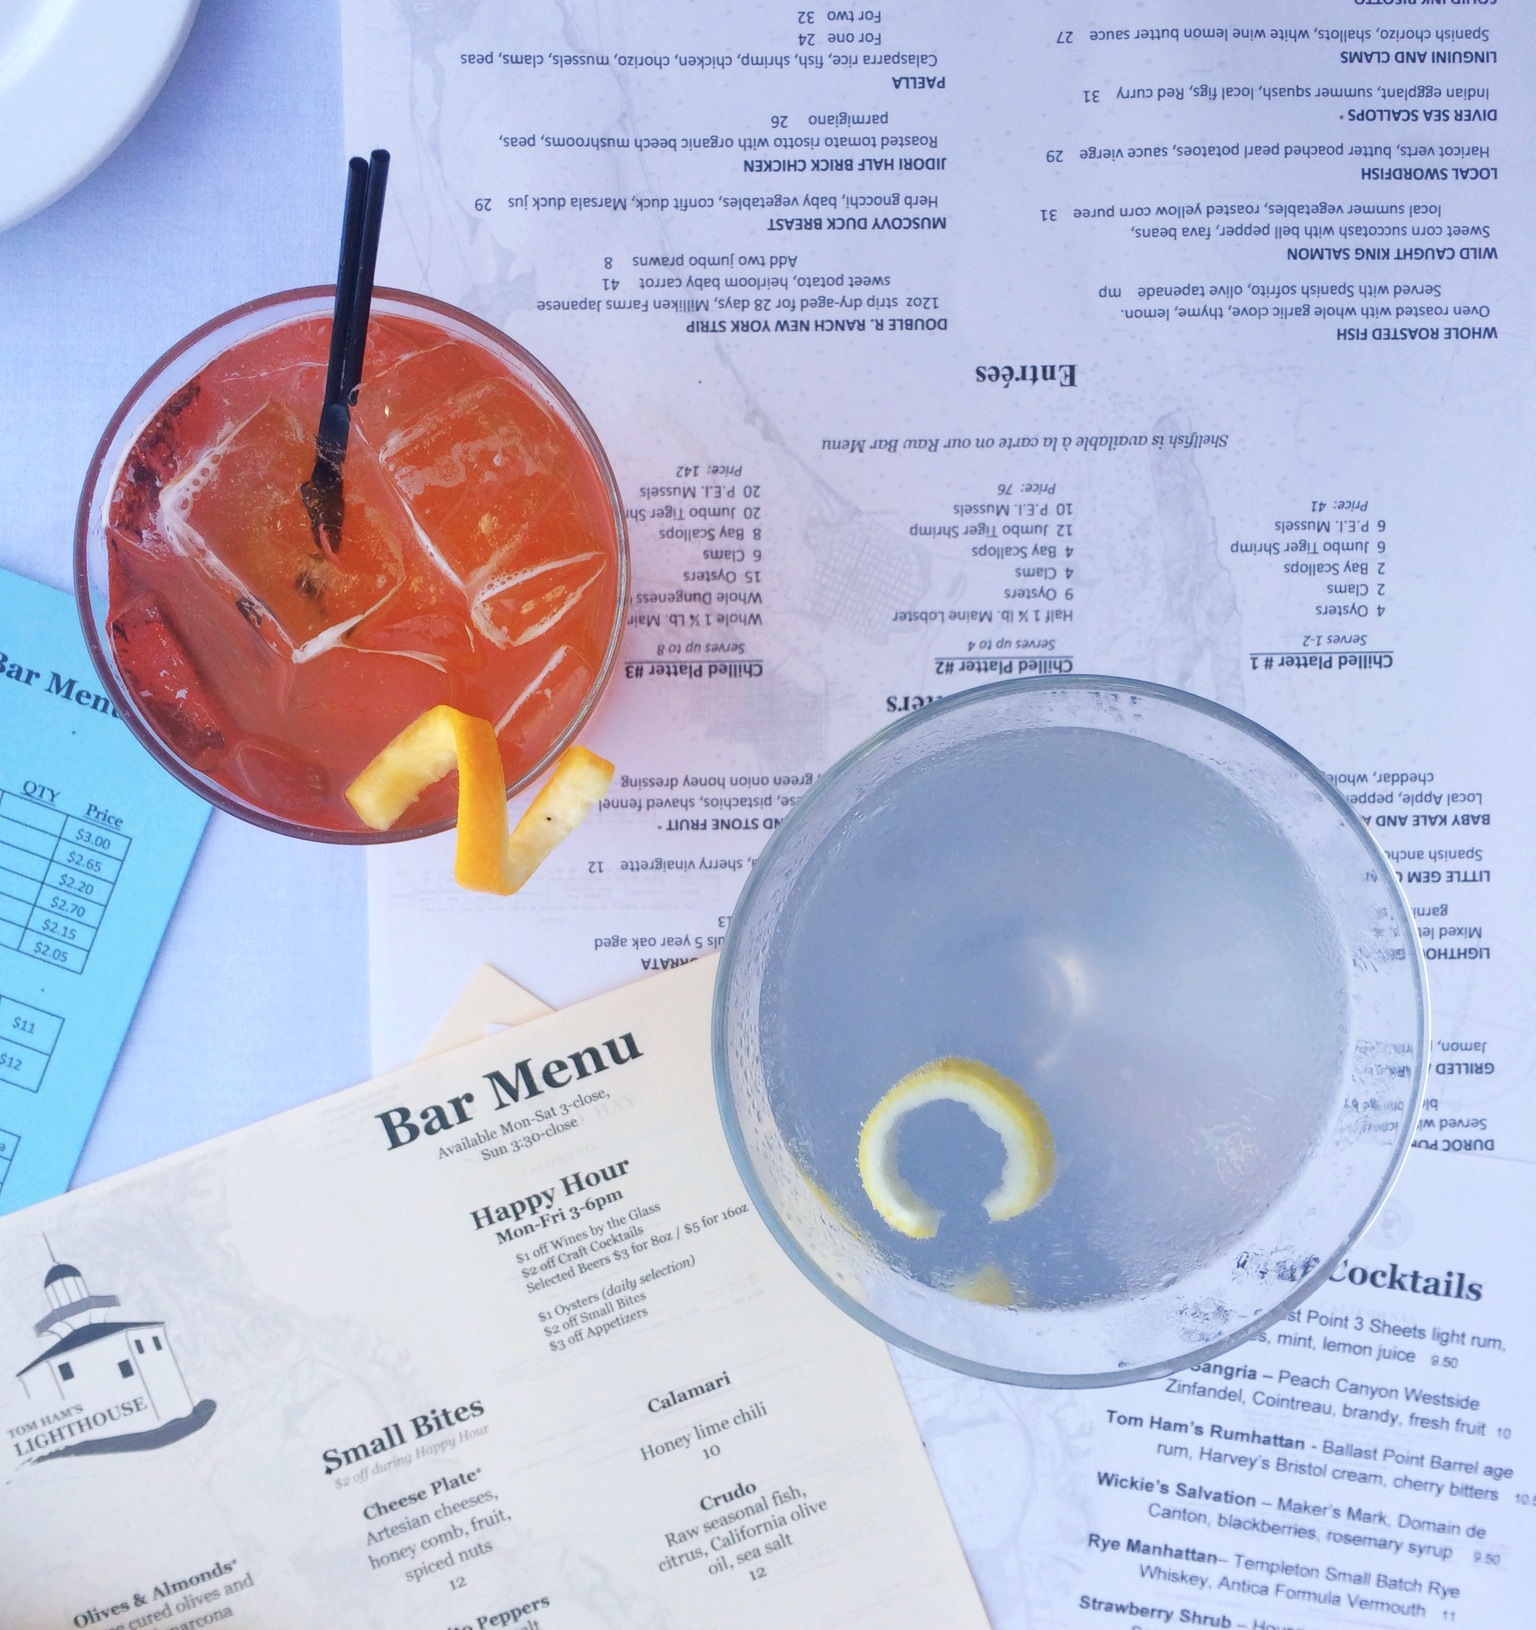 Tom Hams Cocktails